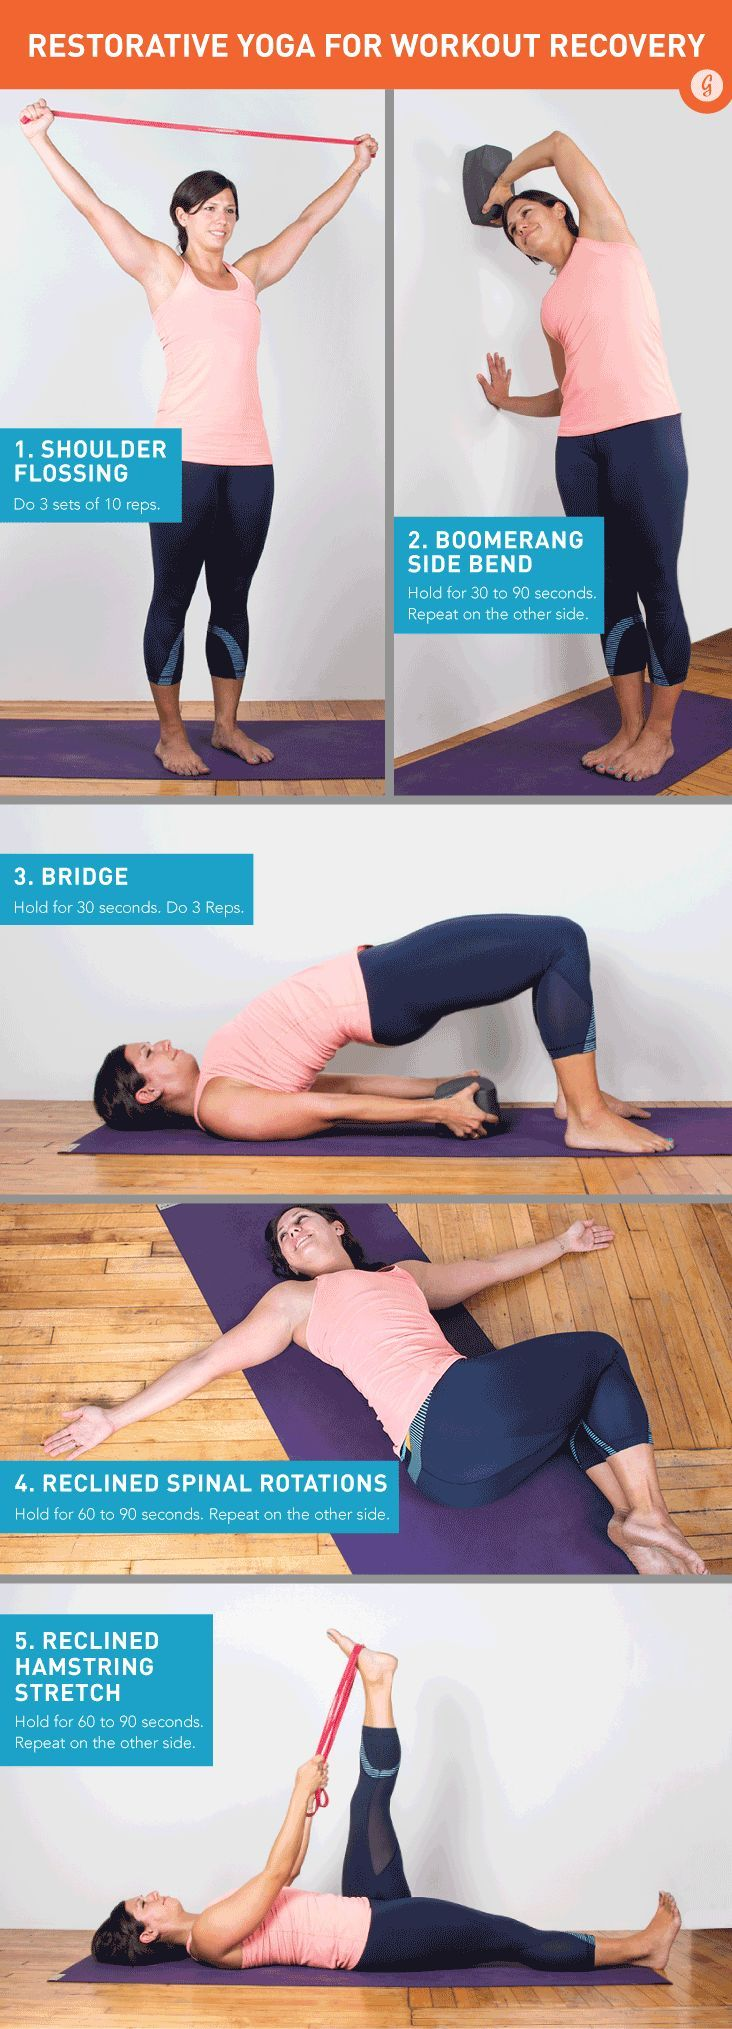 Sore and tight muscles after a workout? Stretch and recover with these quick moves #stretch #recover